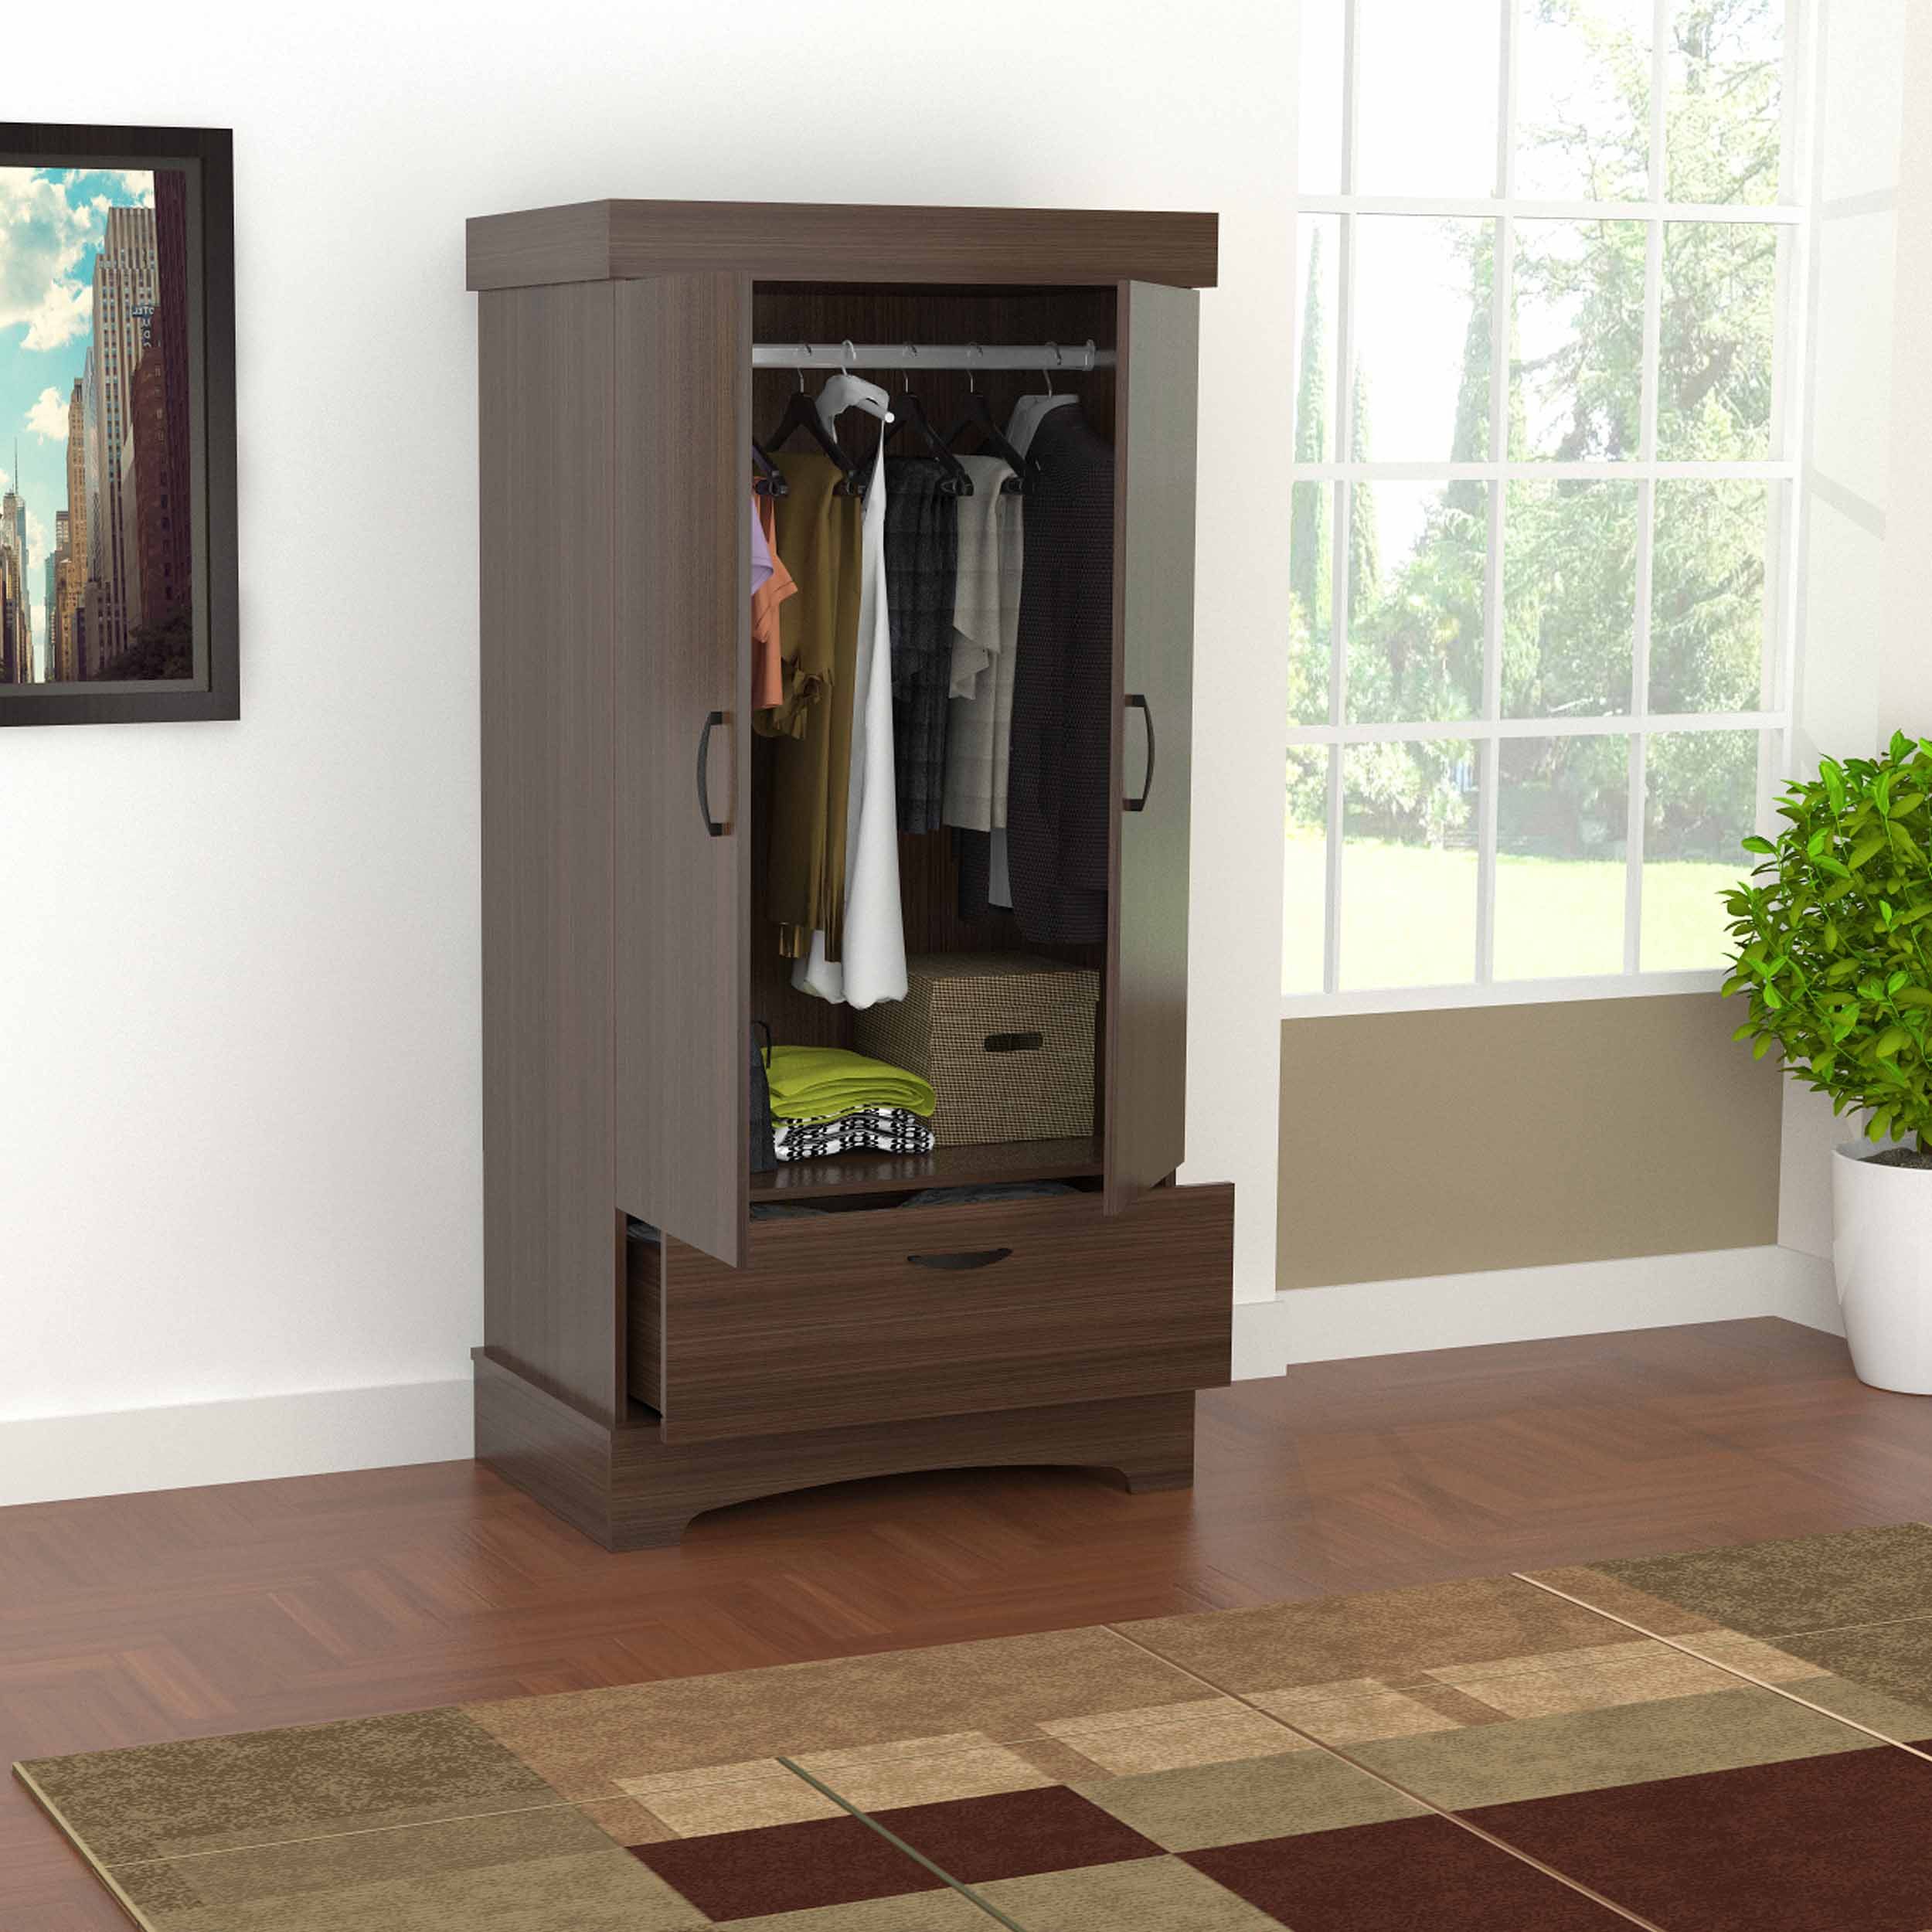 Inval Traditional Brixton/Oak Two Door One Drawer Wardrobe/Armoire